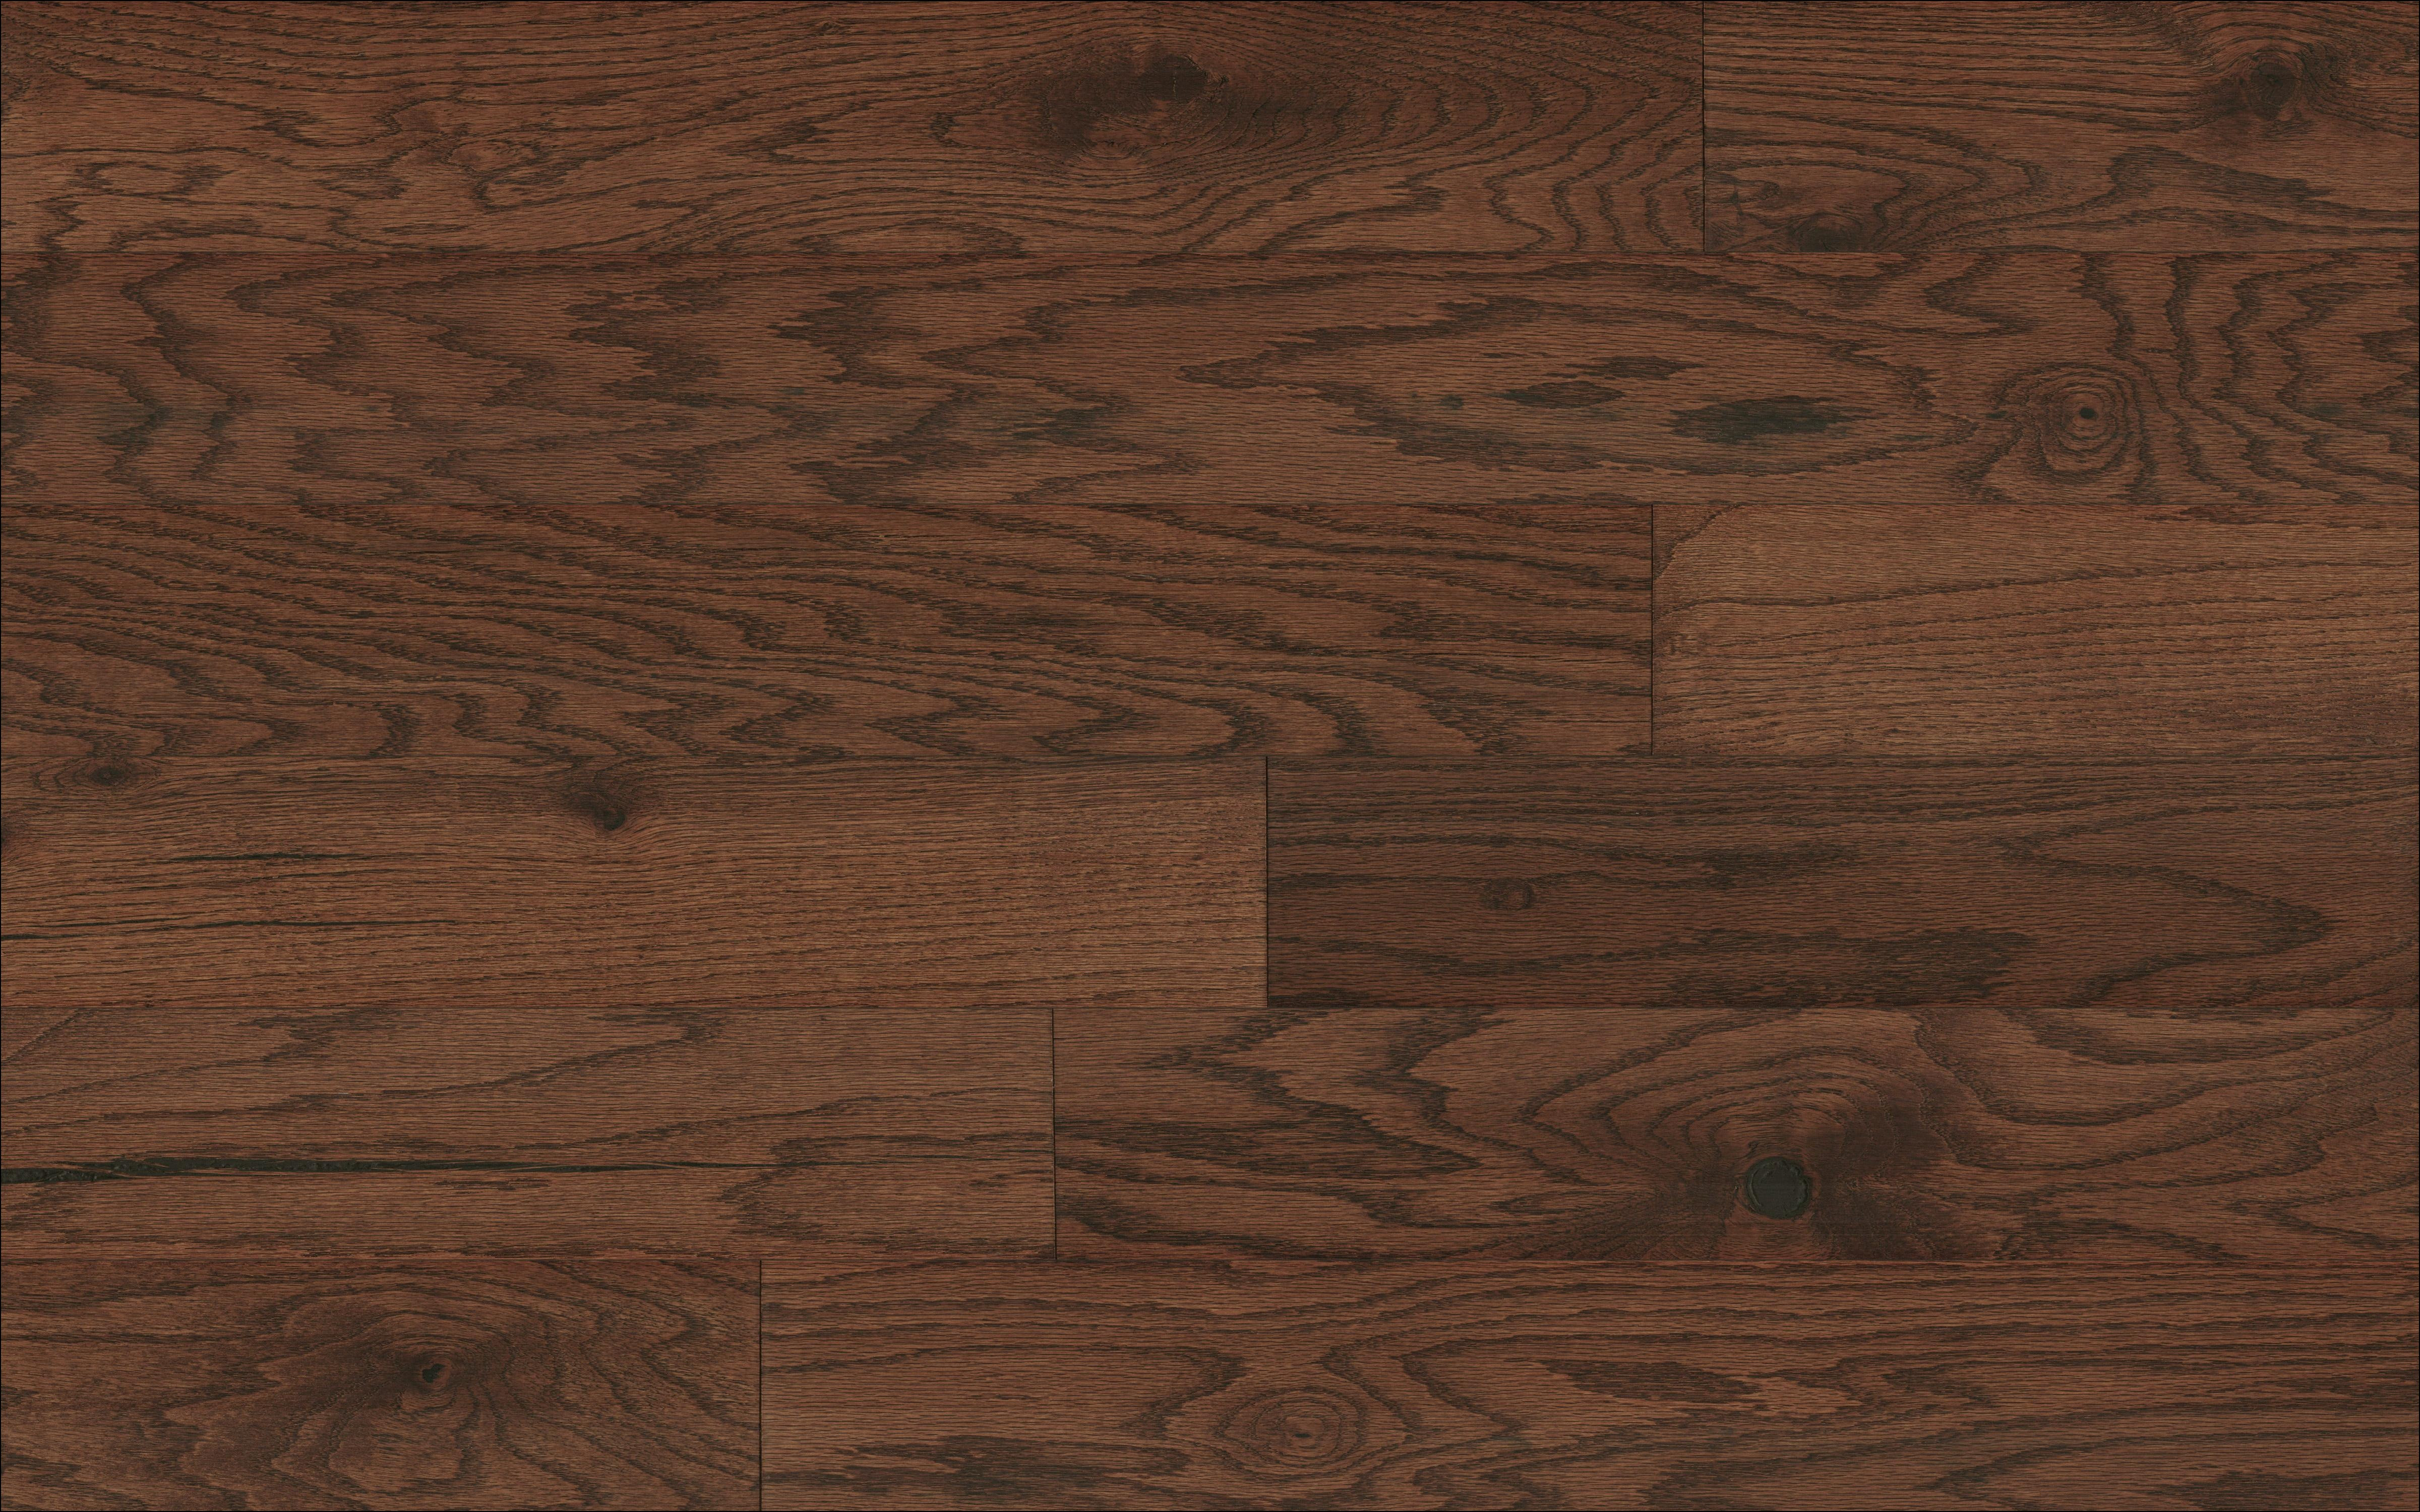 5 engineered hardwood flooring of best place flooring ideas pertaining to best place to buy engineered hardwood flooring collection mullican devonshire oak saddle 5 engineered hardwood